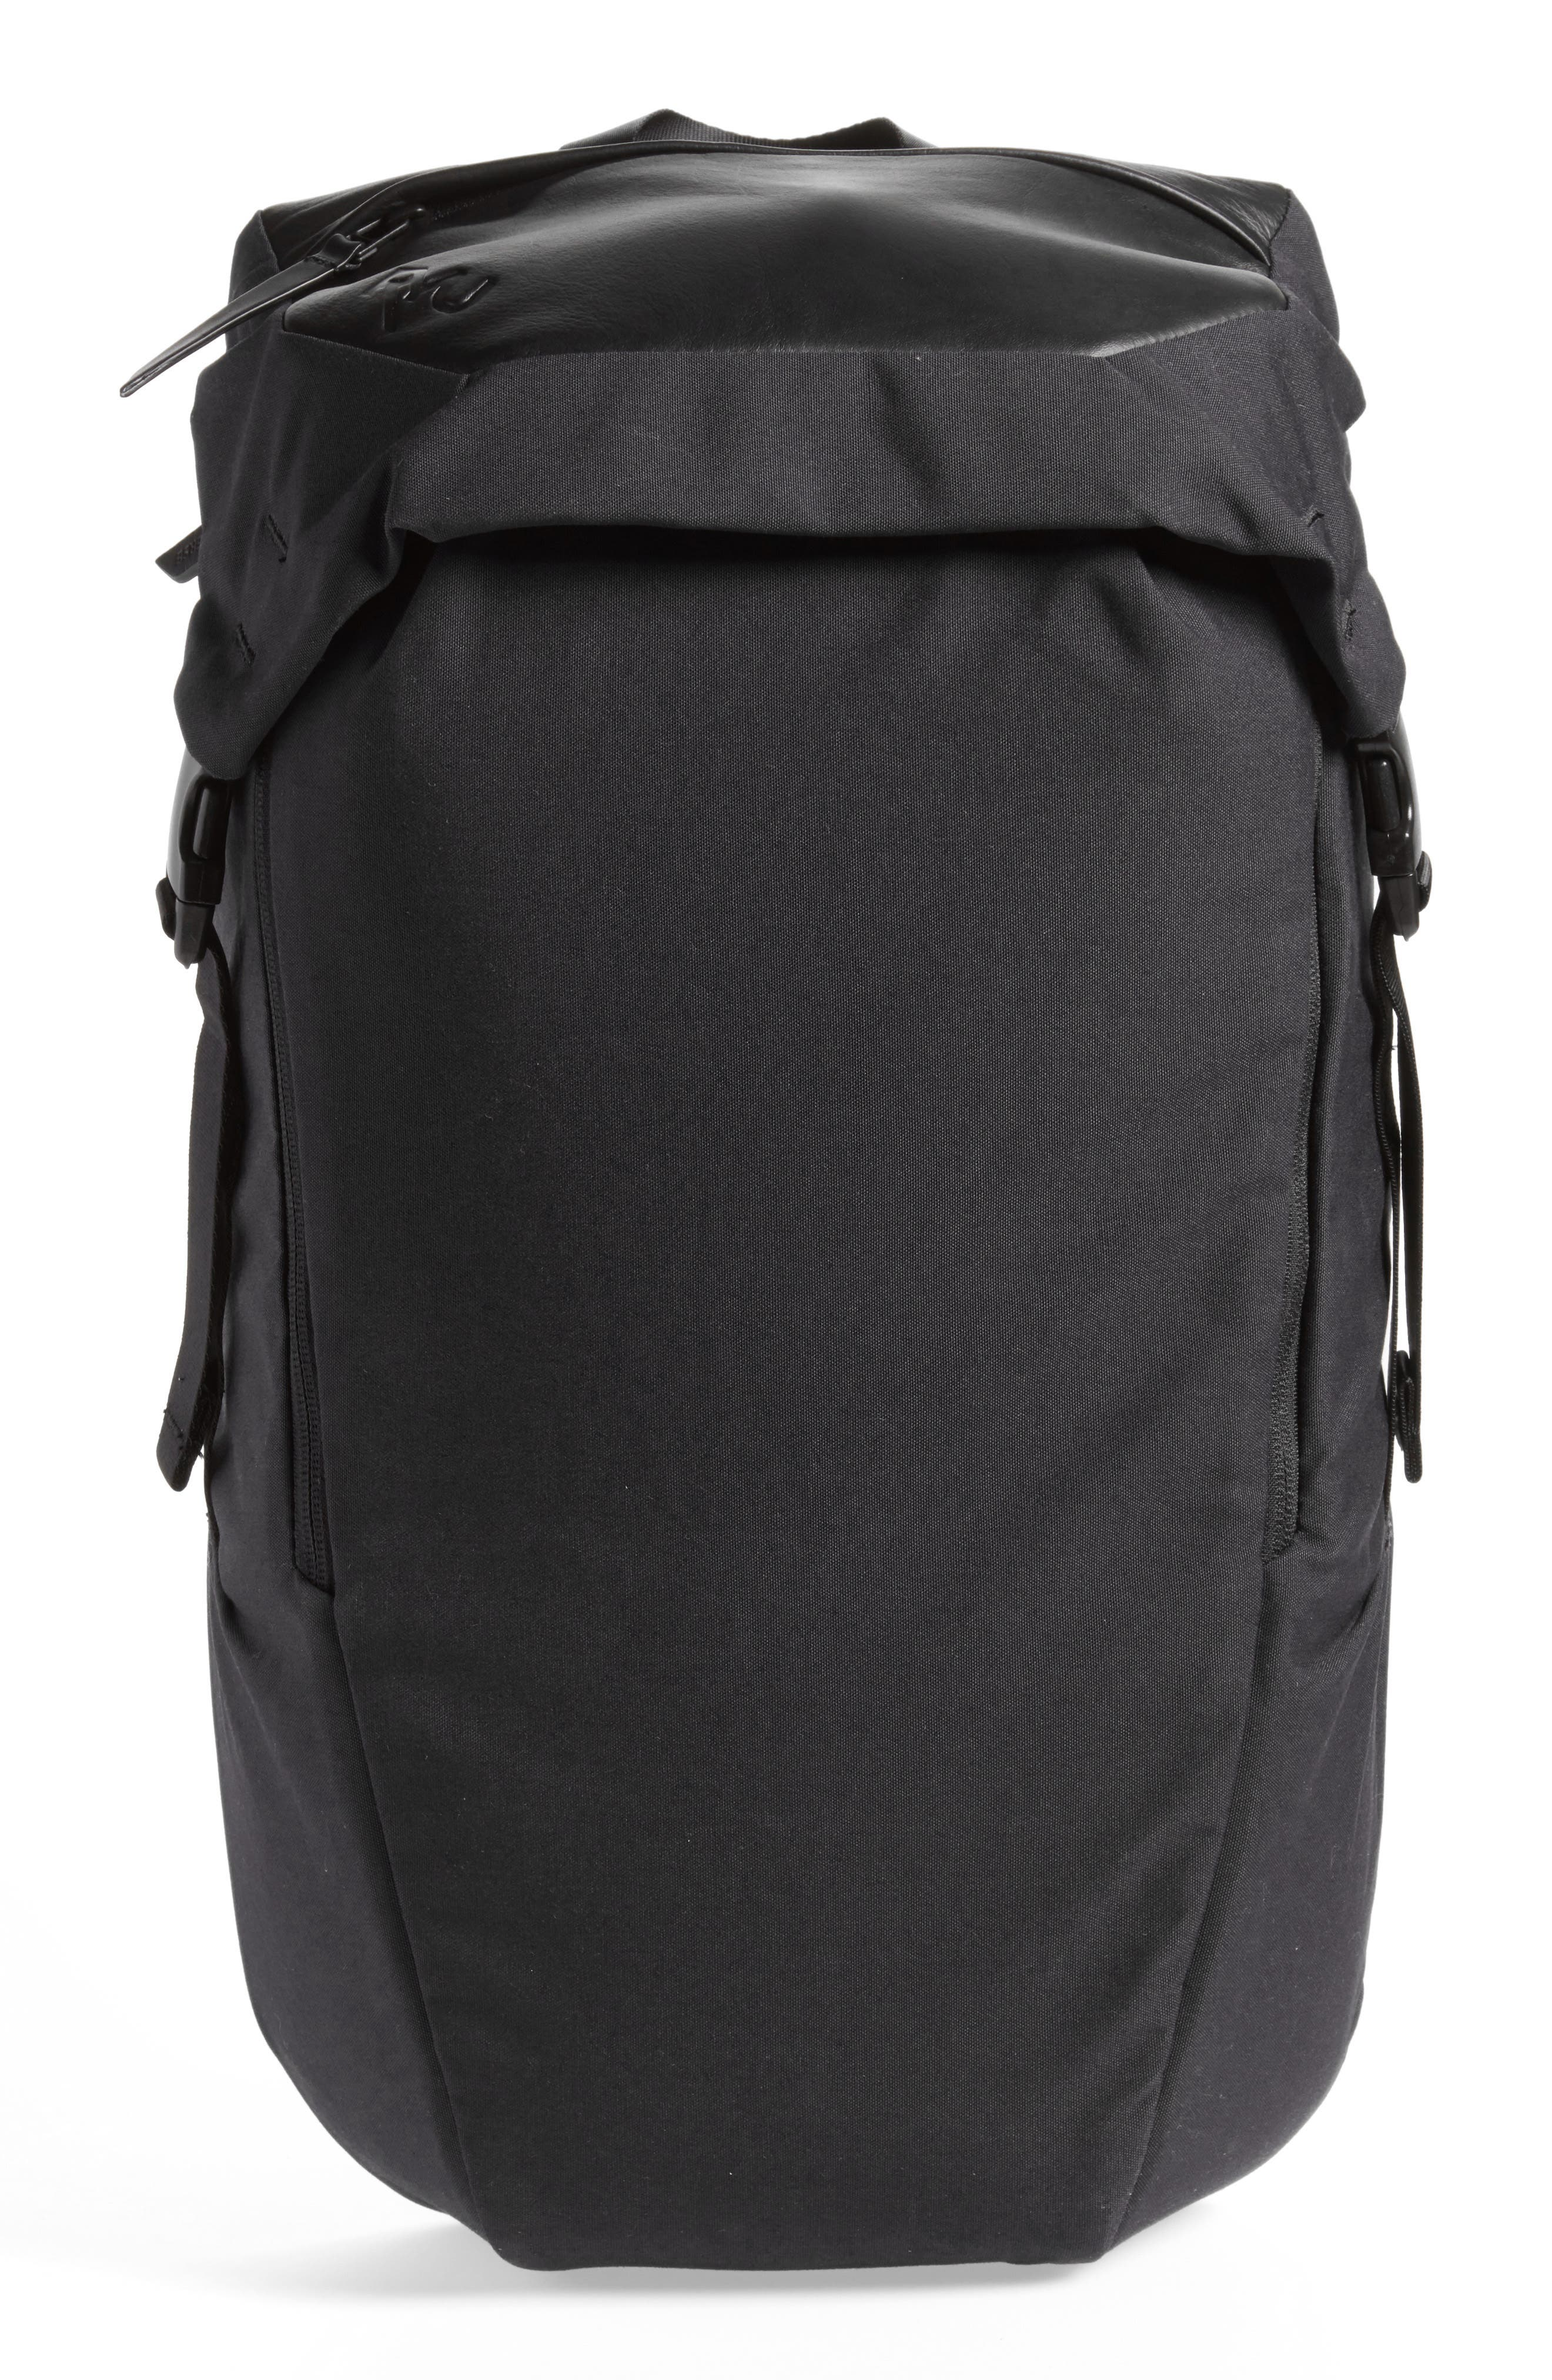 Quick Pack Lux Backpack,                             Main thumbnail 1, color,                             Black